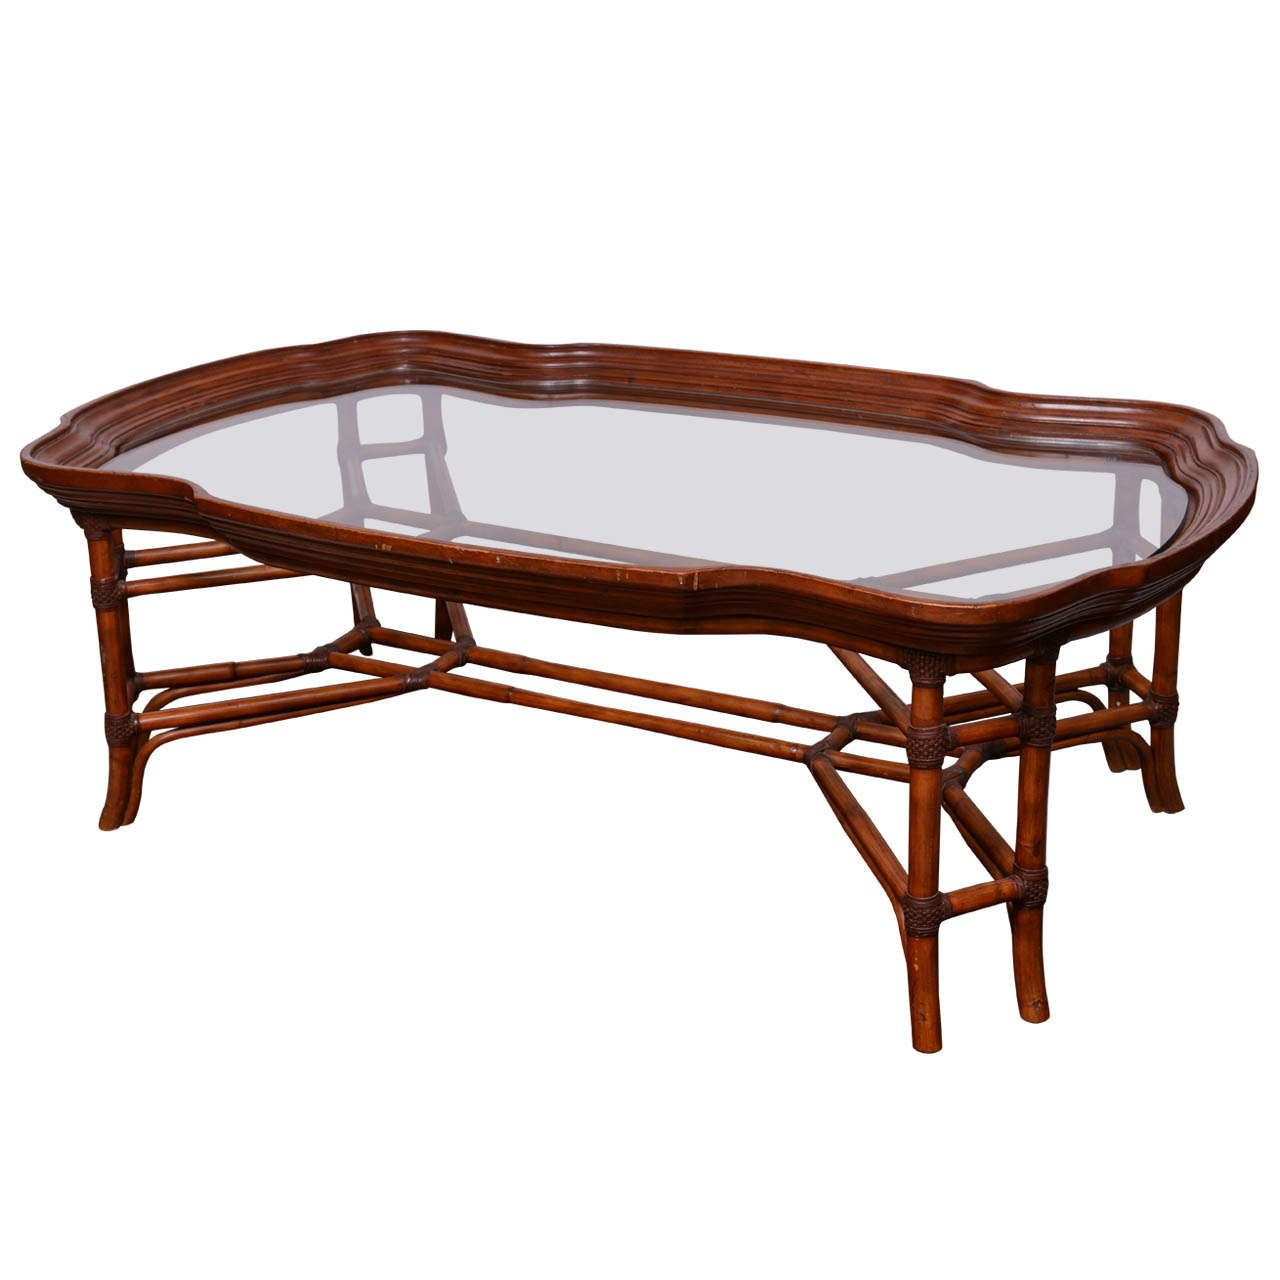 Large Faux Bamboo Coffee Table With Glass Top At 1stdibs Bamboo Coffee Table Coffee Table Glass Top Coffee Table [ 1280 x 1280 Pixel ]